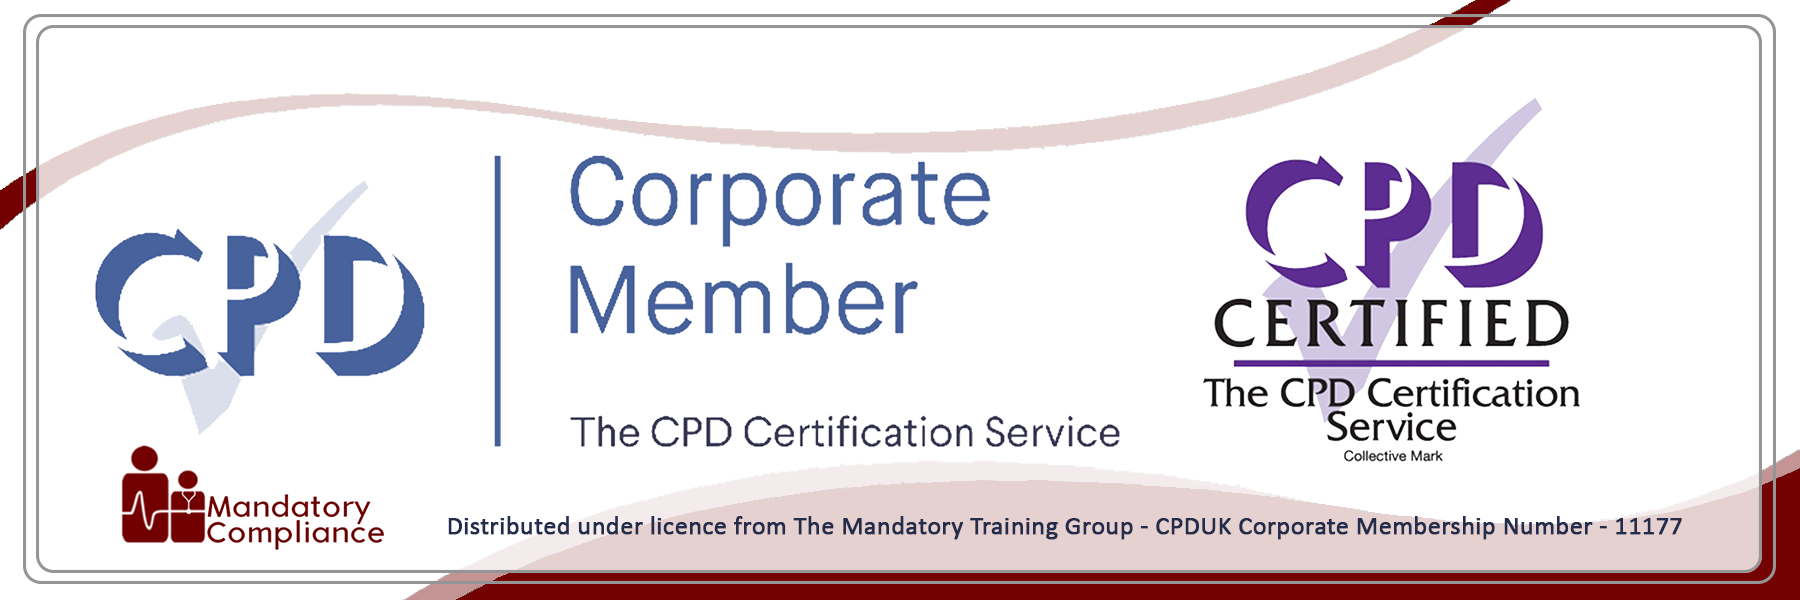 All in One Mandatory Training Courses for Nurses - NMC Revalidation - E-Learning Courses - Mandatory Compliance UK -